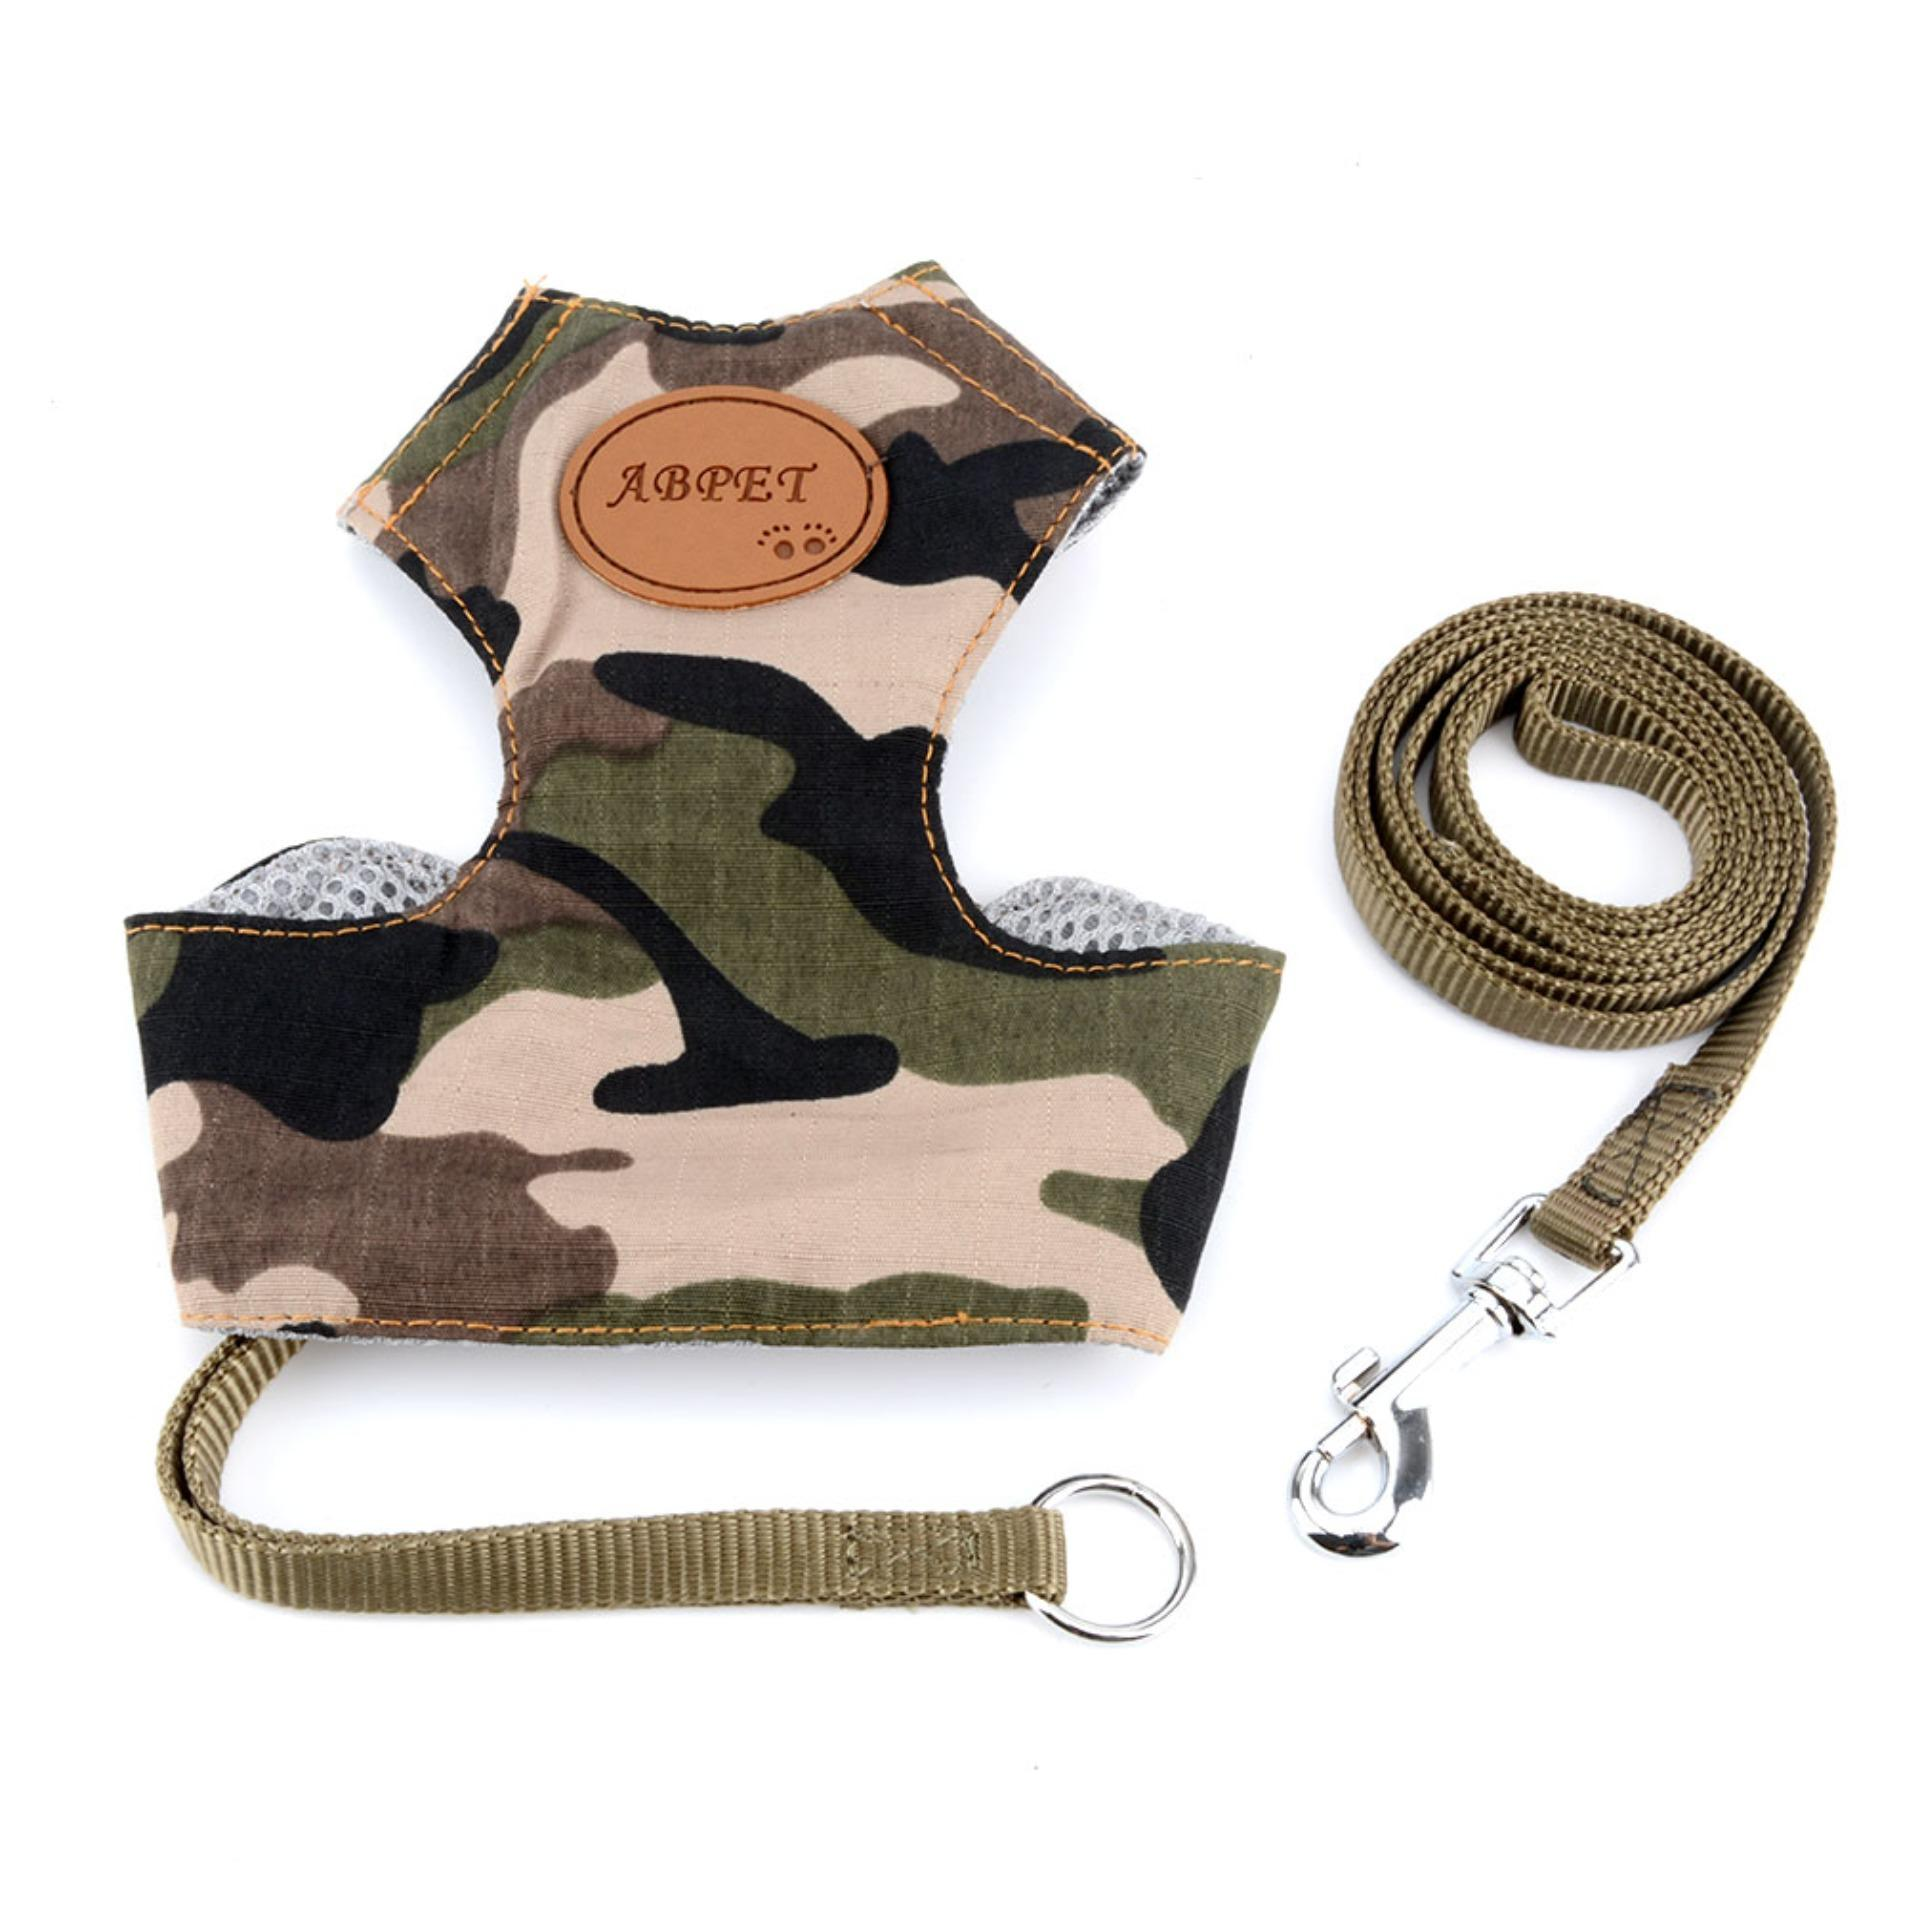 Pet Soft Mesh Dog Harness Pet Walking Vest Camo Padded Harnesses Adjustable Comfort Control Dog Walking Harness Green Xxl - Intl By Selmai.